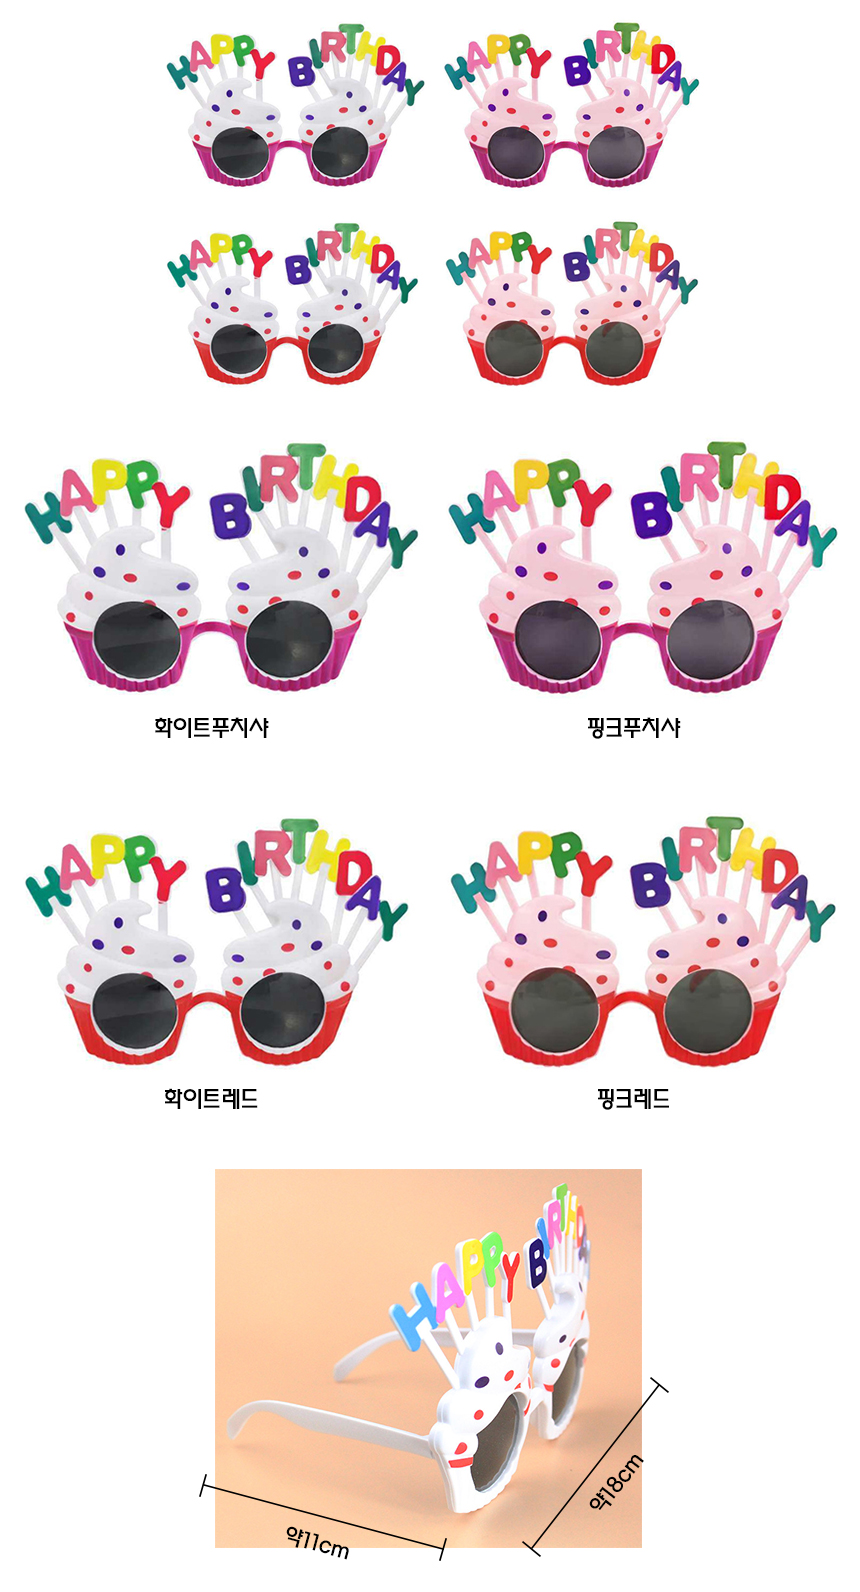 http://partyb2b.mireene.kr/img/party/glasses/happyB2.jpg